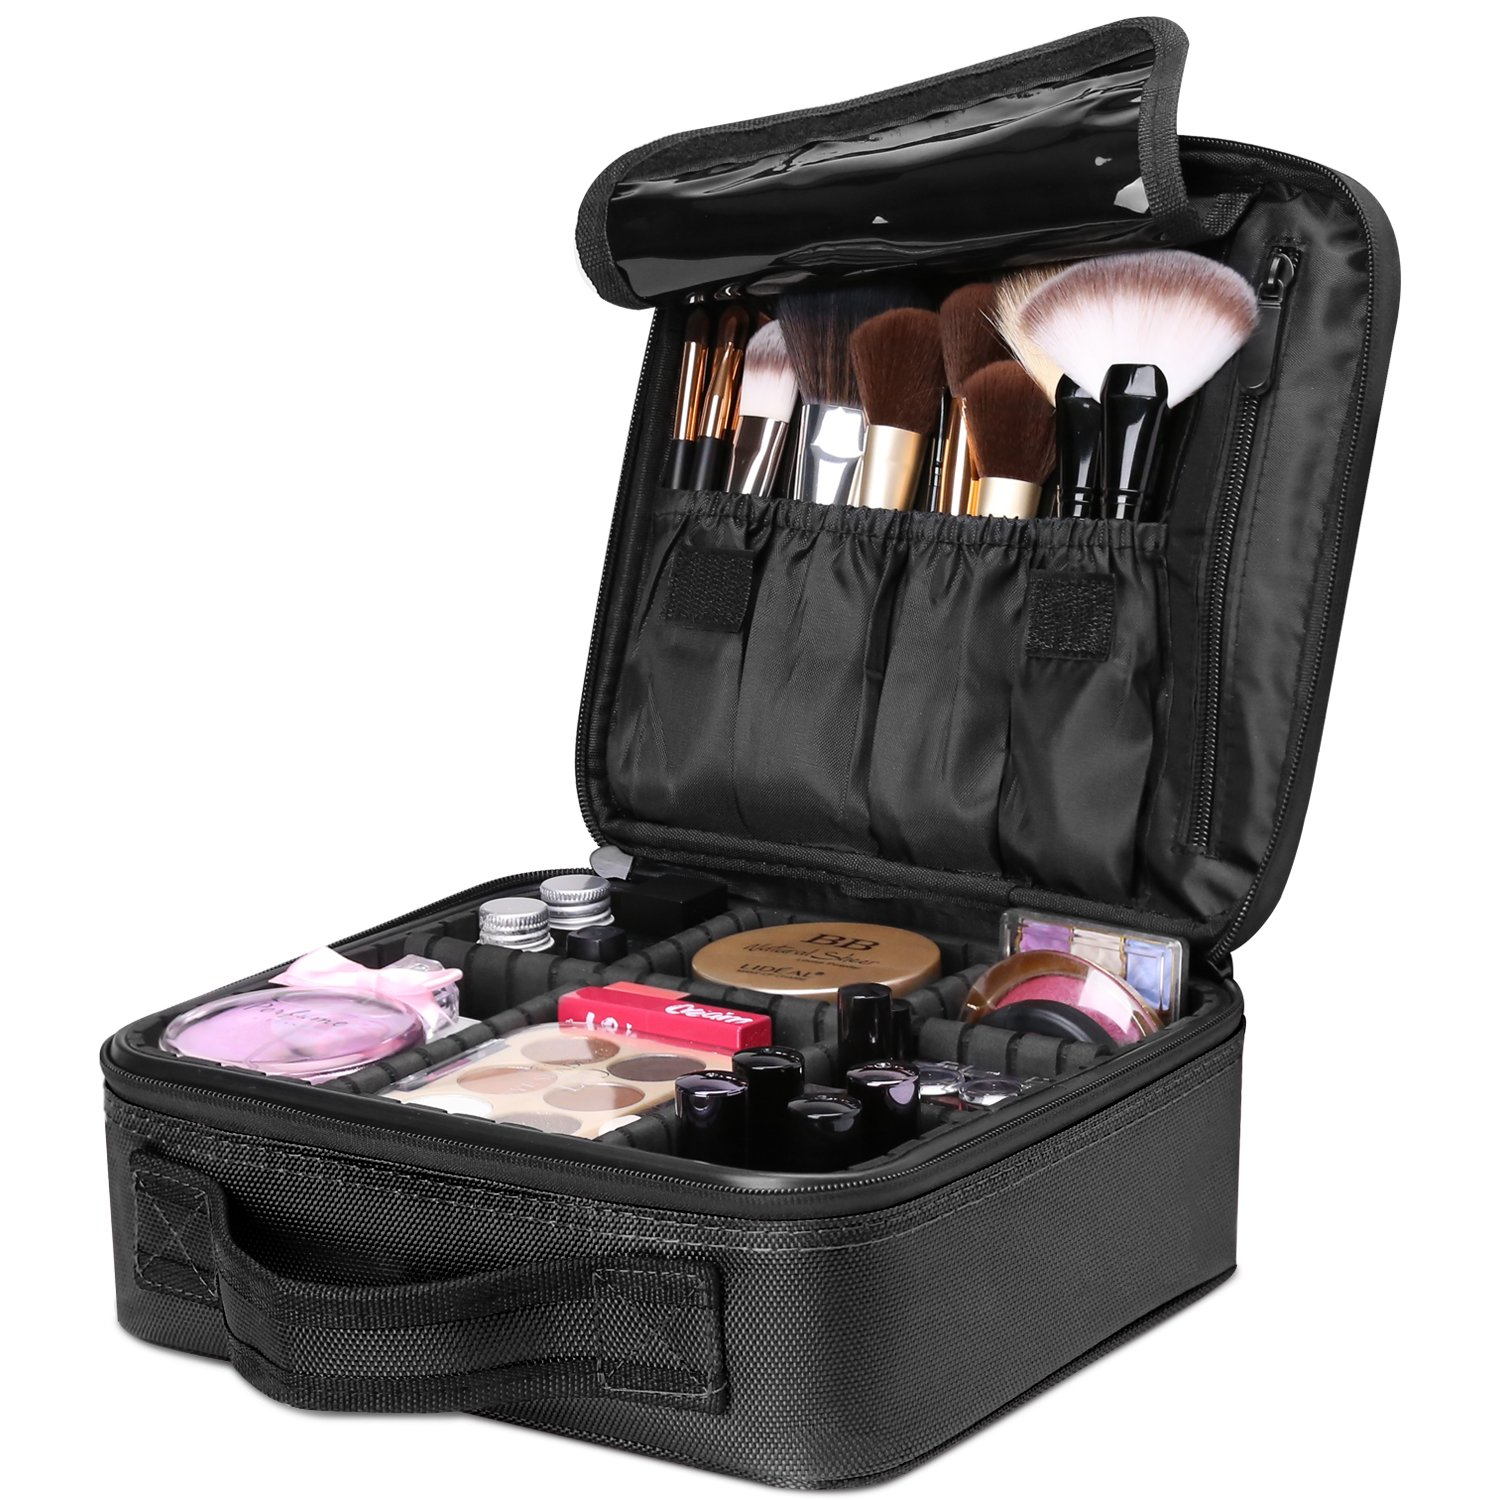 Luxspire Makeup Cosmetic Storage Case, Professional Make up Train Case Cosmetic Box Portable Travel Artist Storage Bag Brushes Bag Toiletry Organizer Tool with Adjustable Dividers